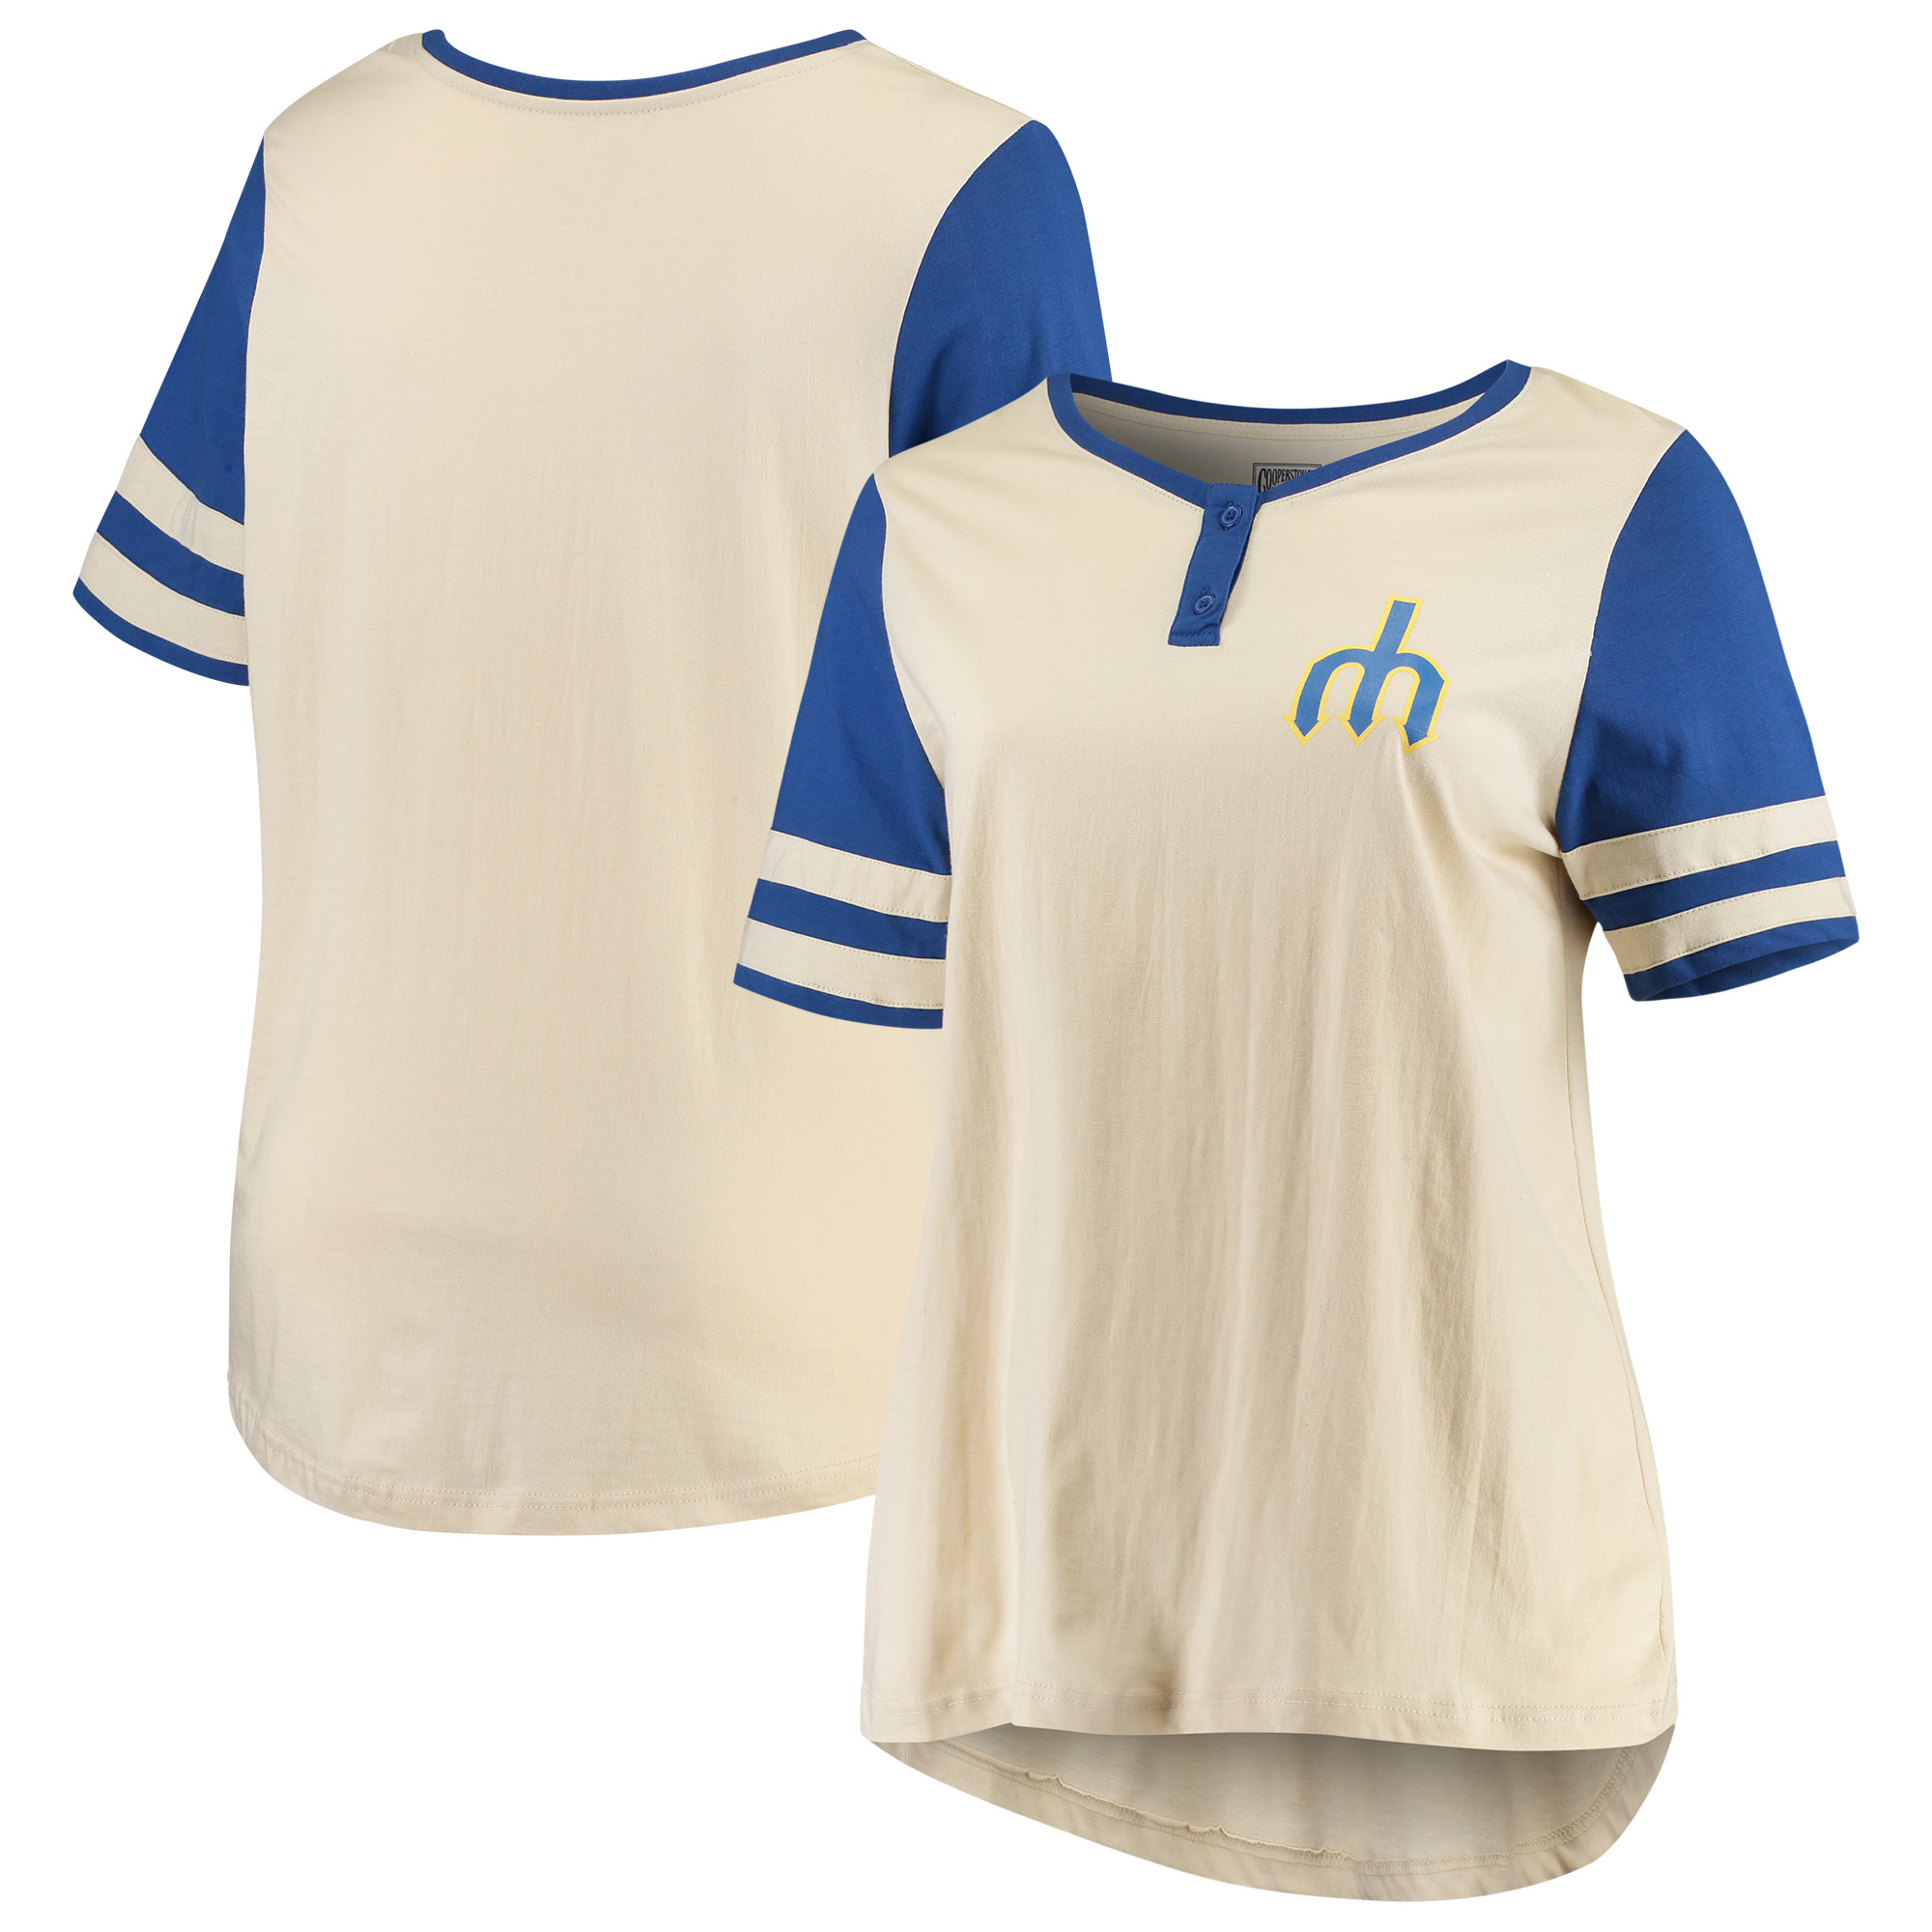 Seattle Mariners Majestic Women's Plus Size Cooperstown Collection Henley T-Shirt - Cream/Royal